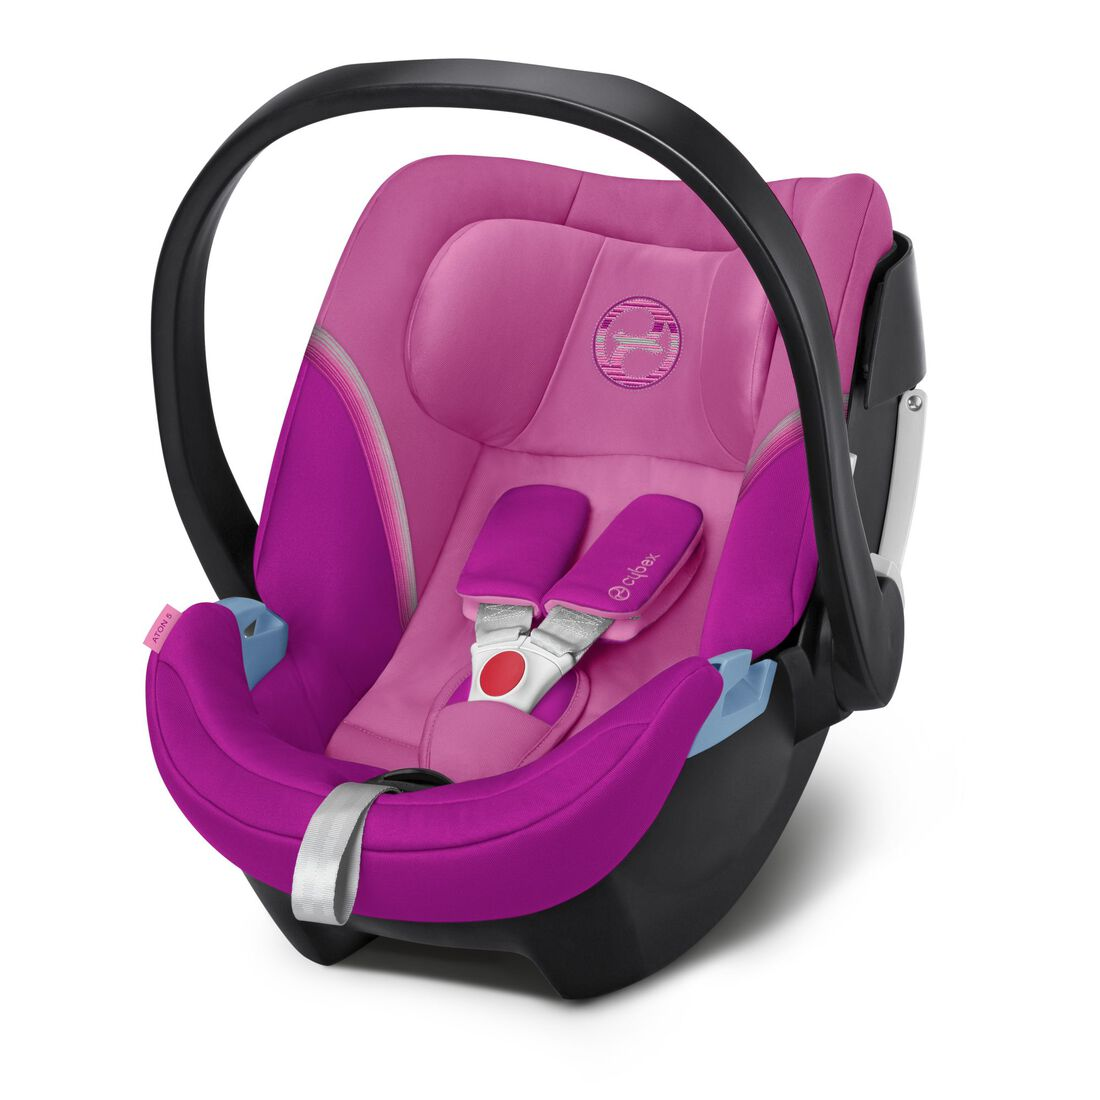 CYBEX Aton 5 - Magnolia Pink in Magnolia Pink large image number 1